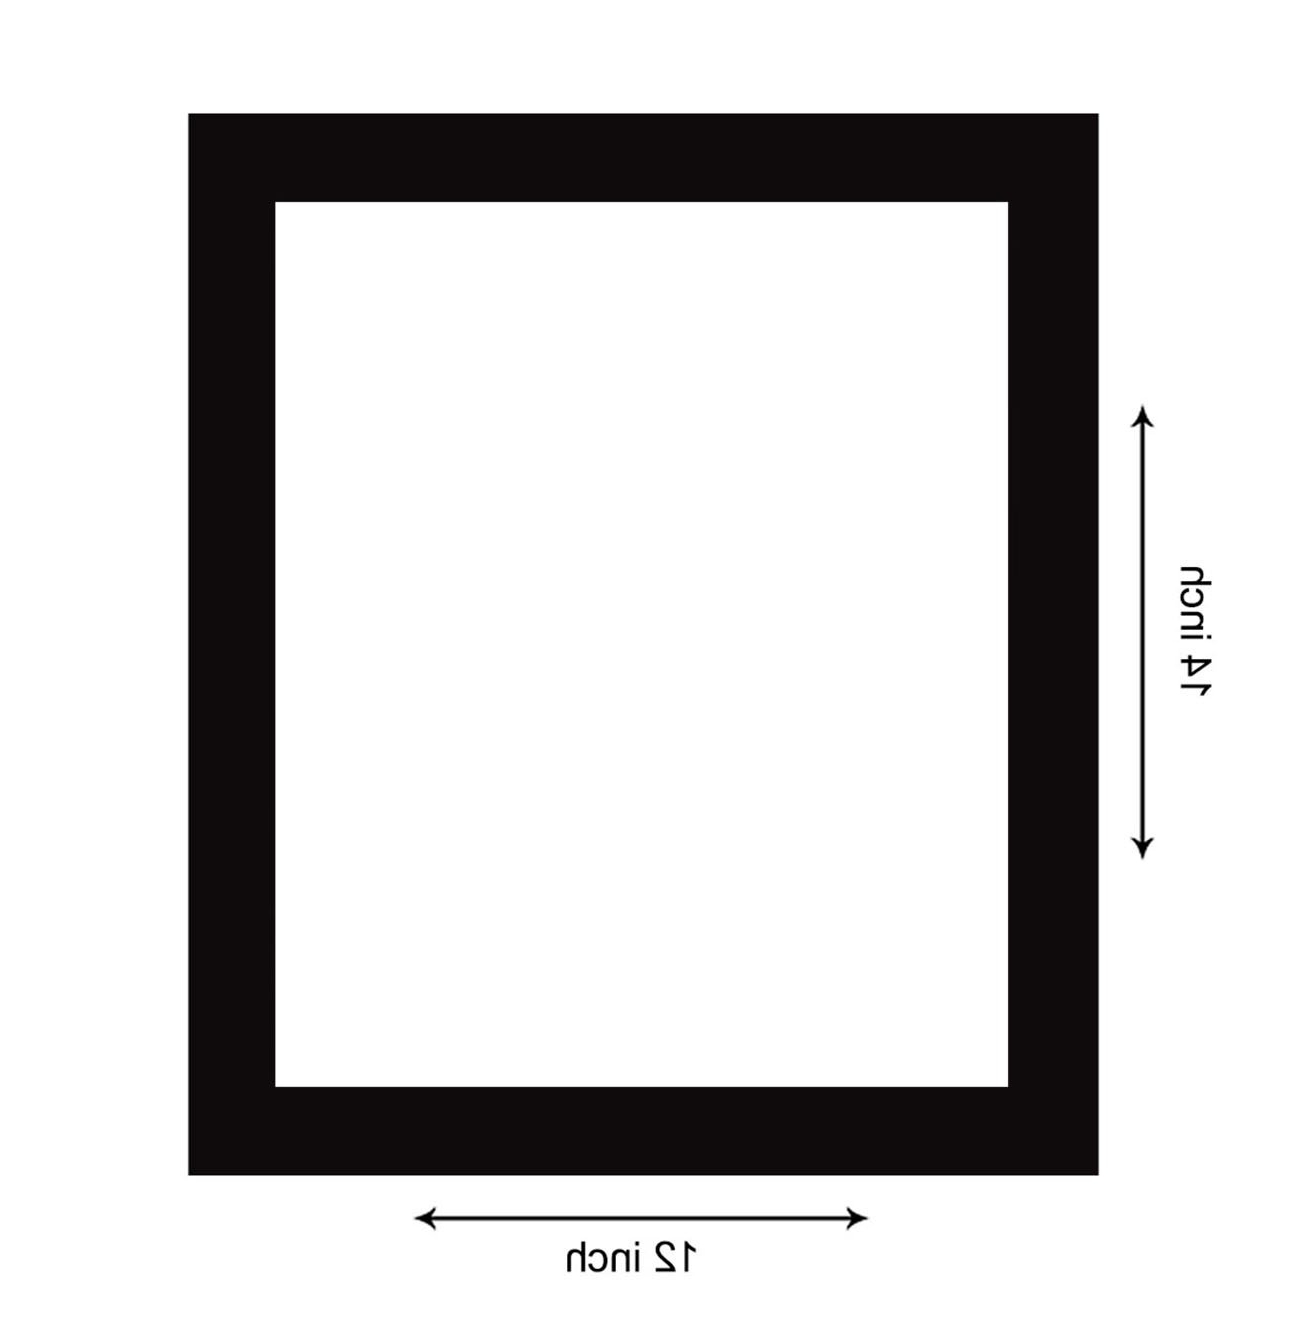 Flat Wall Mirrors Intended For Most Recently Released Art Street Flat Decorative Wall Mirror (12 X 14 Inch, Black) (View 9 of 20)